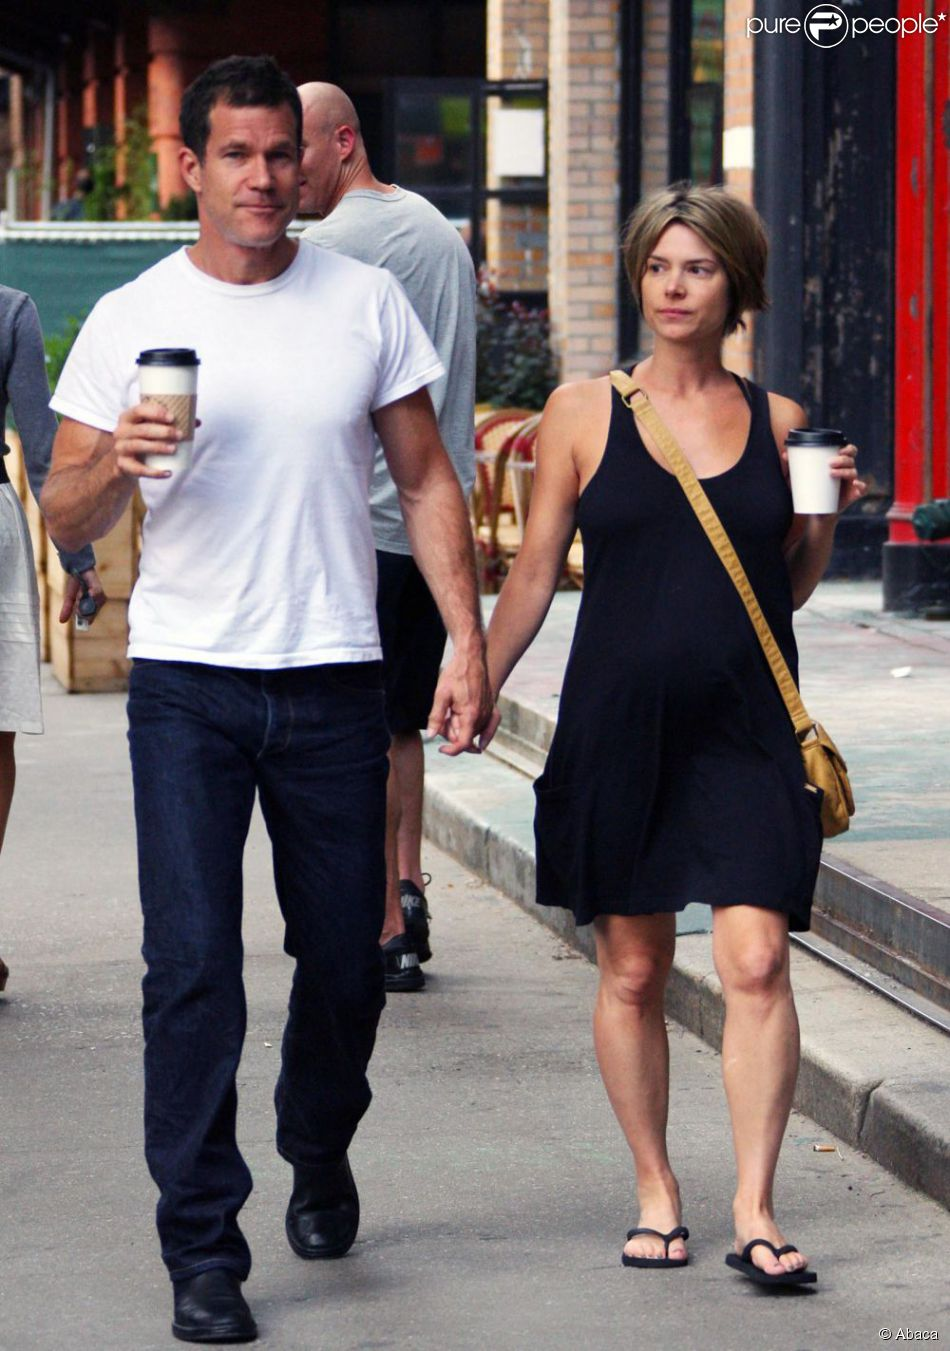 Dylan Walsh and new girlfriend get a coffee in Los Angeles, CA on July 1, 2011. Photo by Ramey Agency/ABACAPRESS.COM01/07/2011 - Beverly Hills